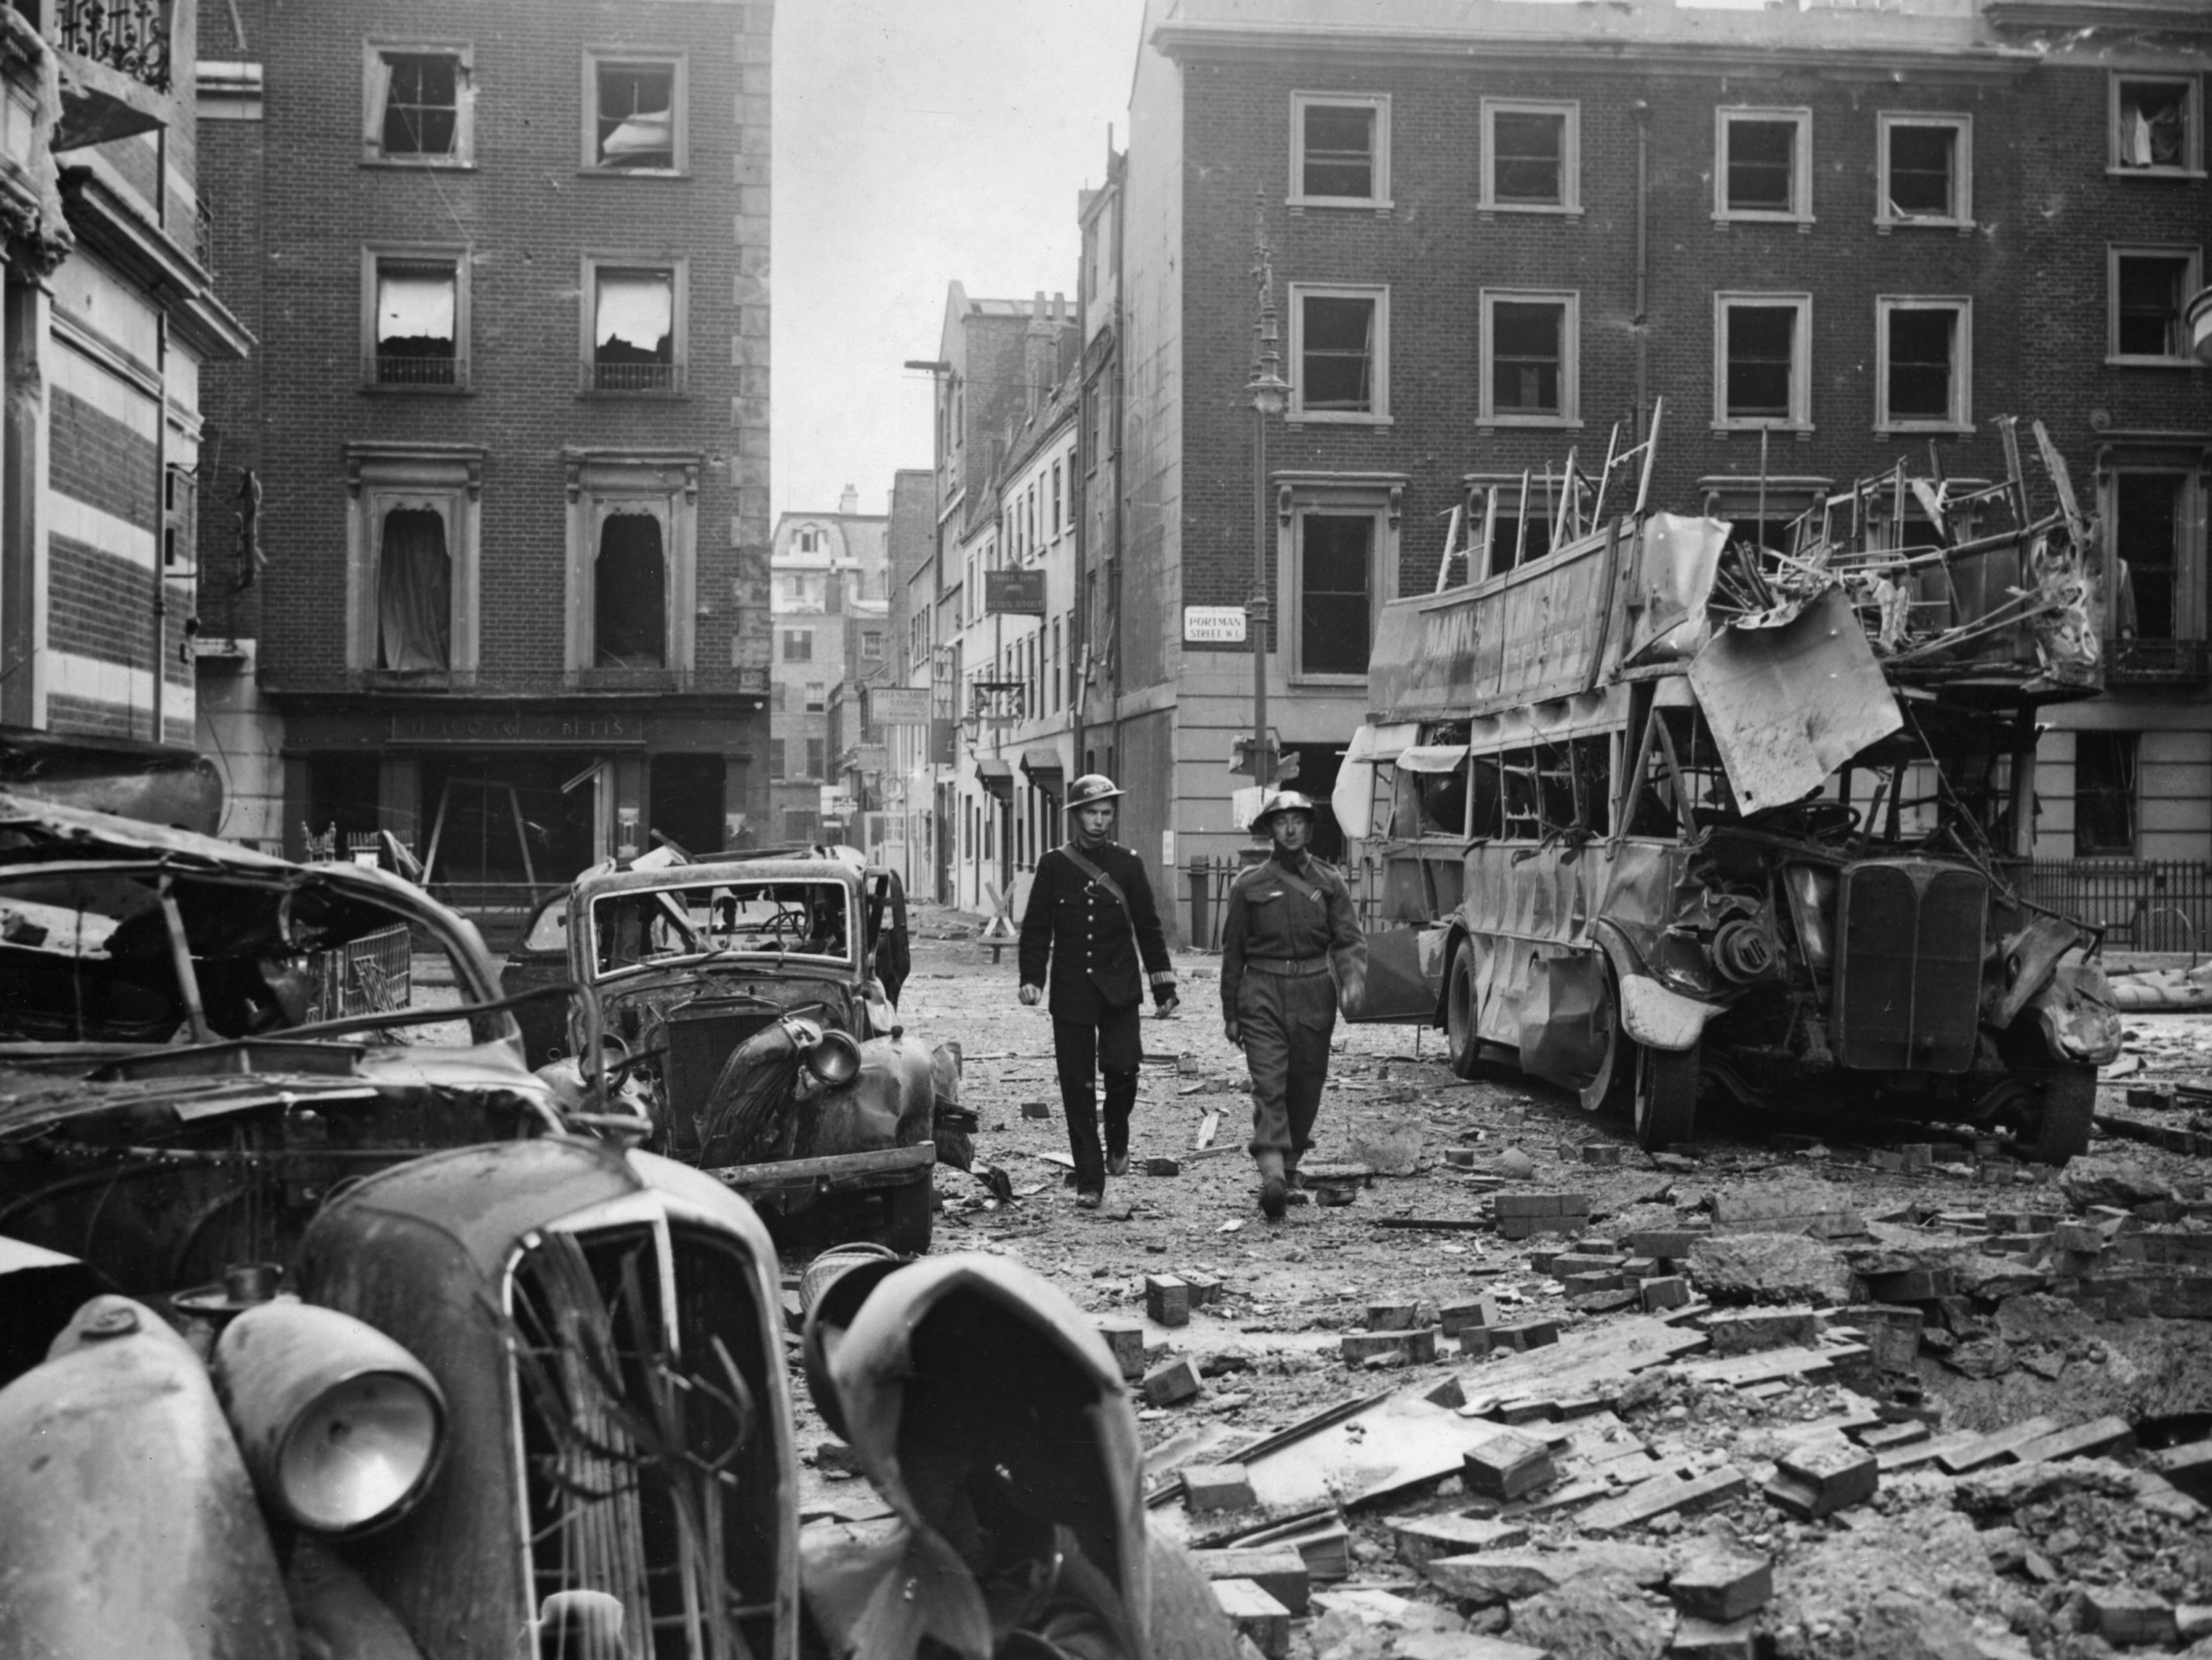 COVID-19 has now killed more people in the U.K. than The Blitz